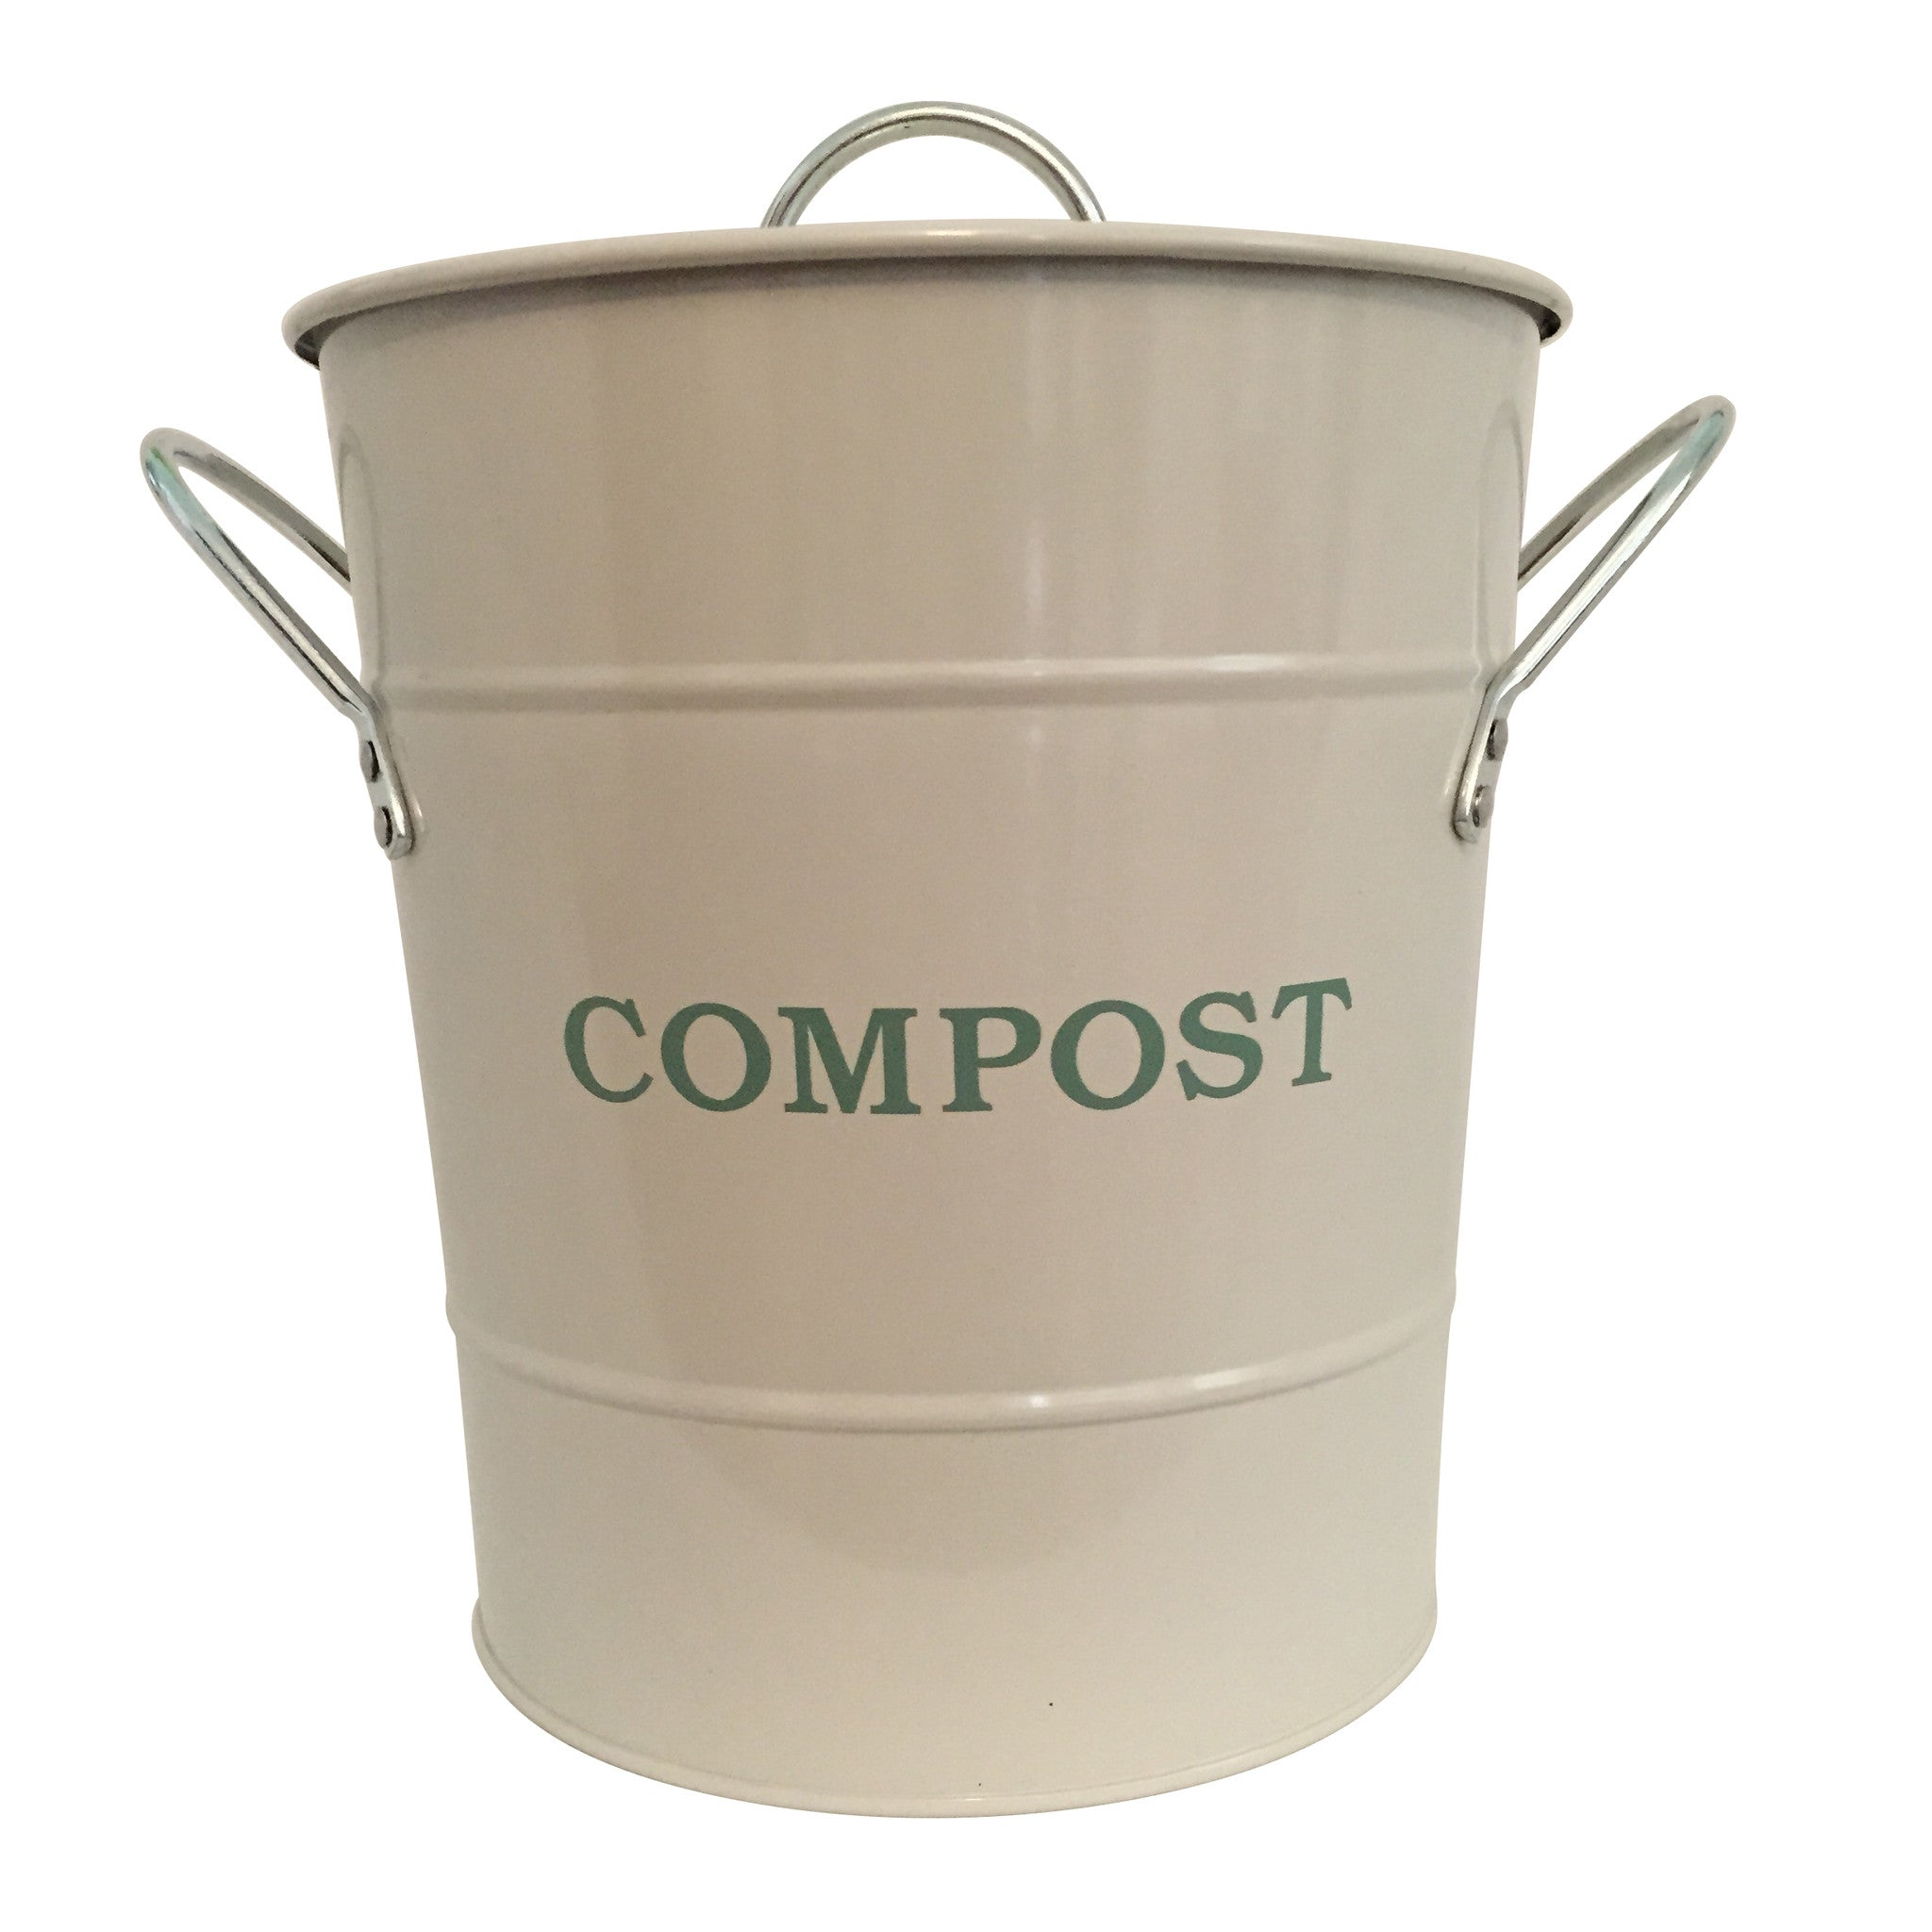 Compost Bucket - Chalk - The Potting Shed Garden Tools